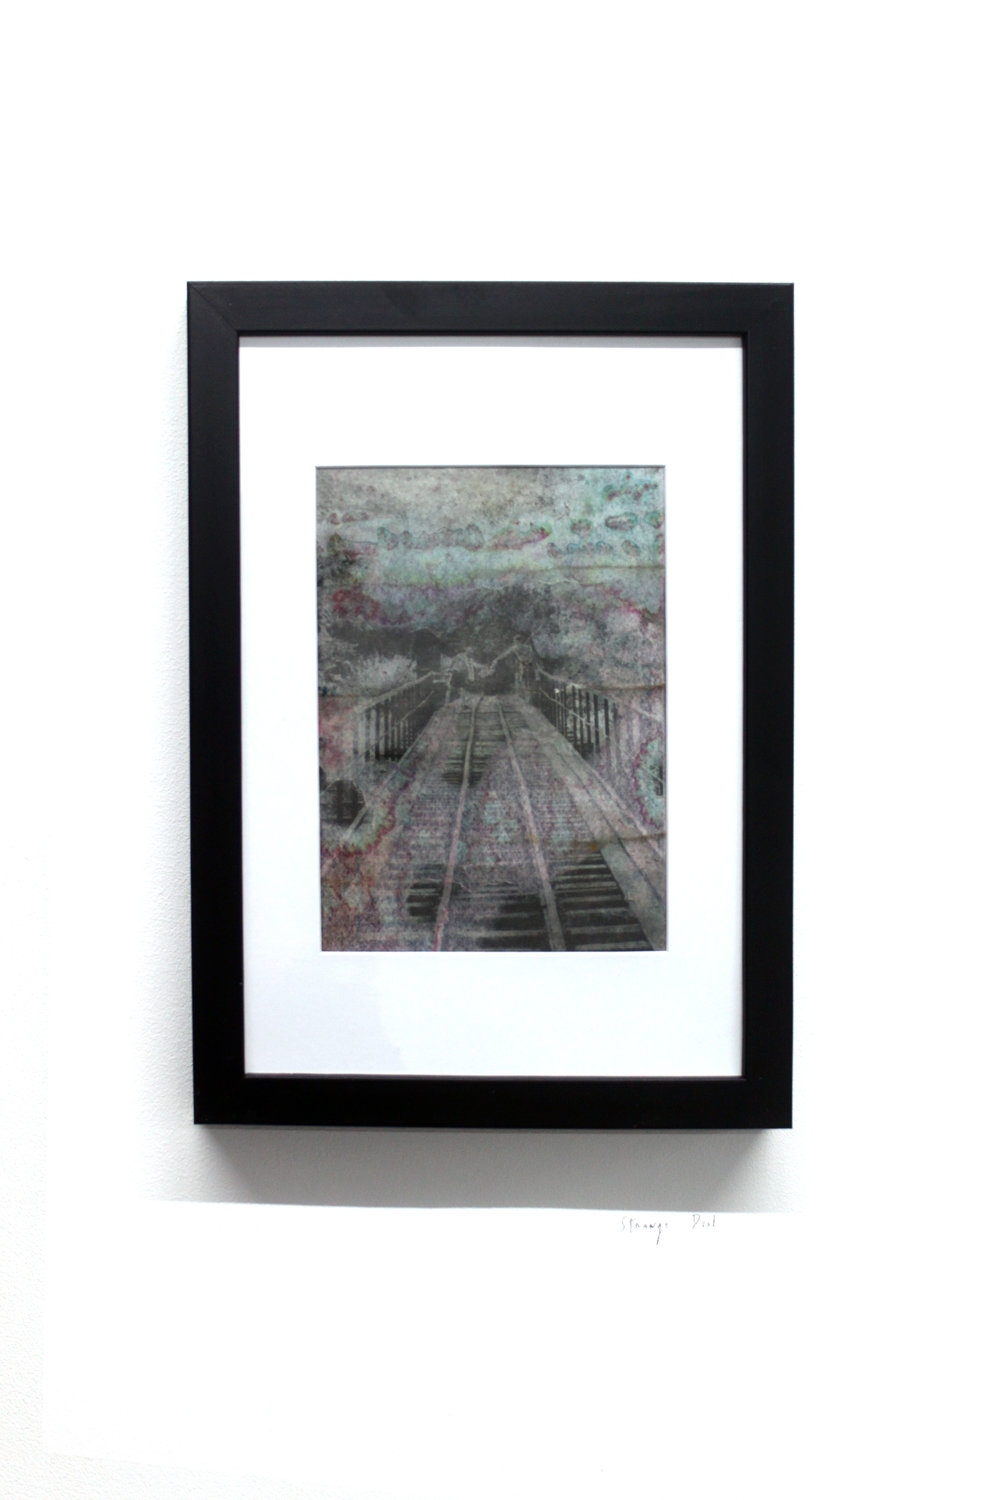 Edouard Burgeat,  Train rails acid fragments, Strange deal,  Analog photo-transfer on steel plate, 21x15cm